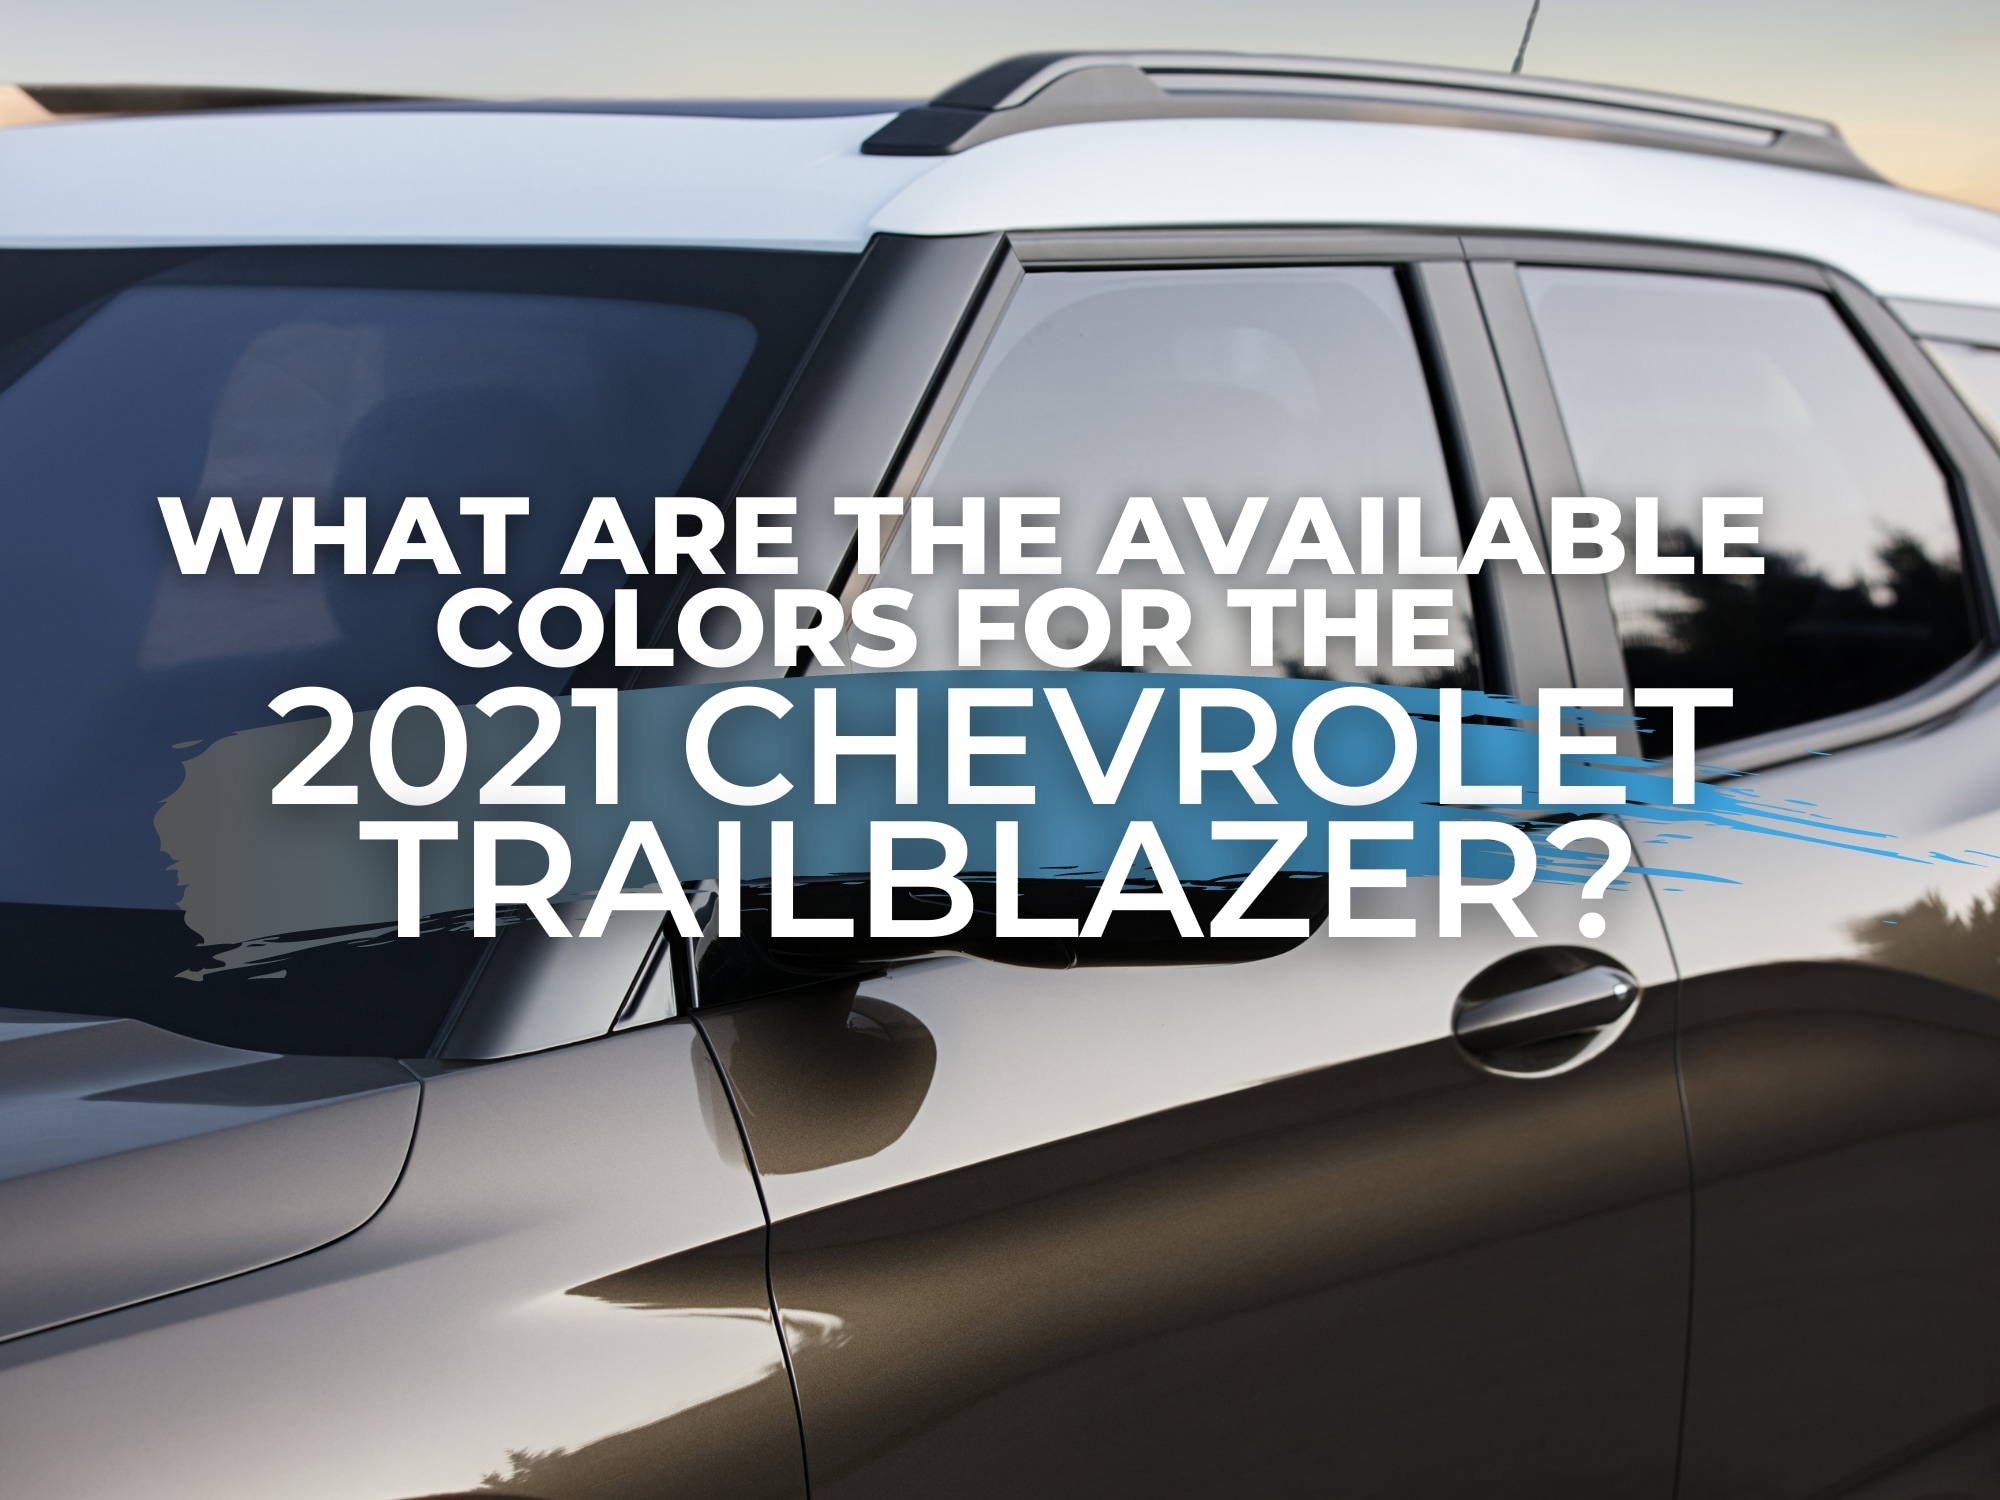 """3/4 view of Chevrolet Trailblazer with """"What are the available color for the 2021 Chevrolet Trailblazer"""" in white letters"""